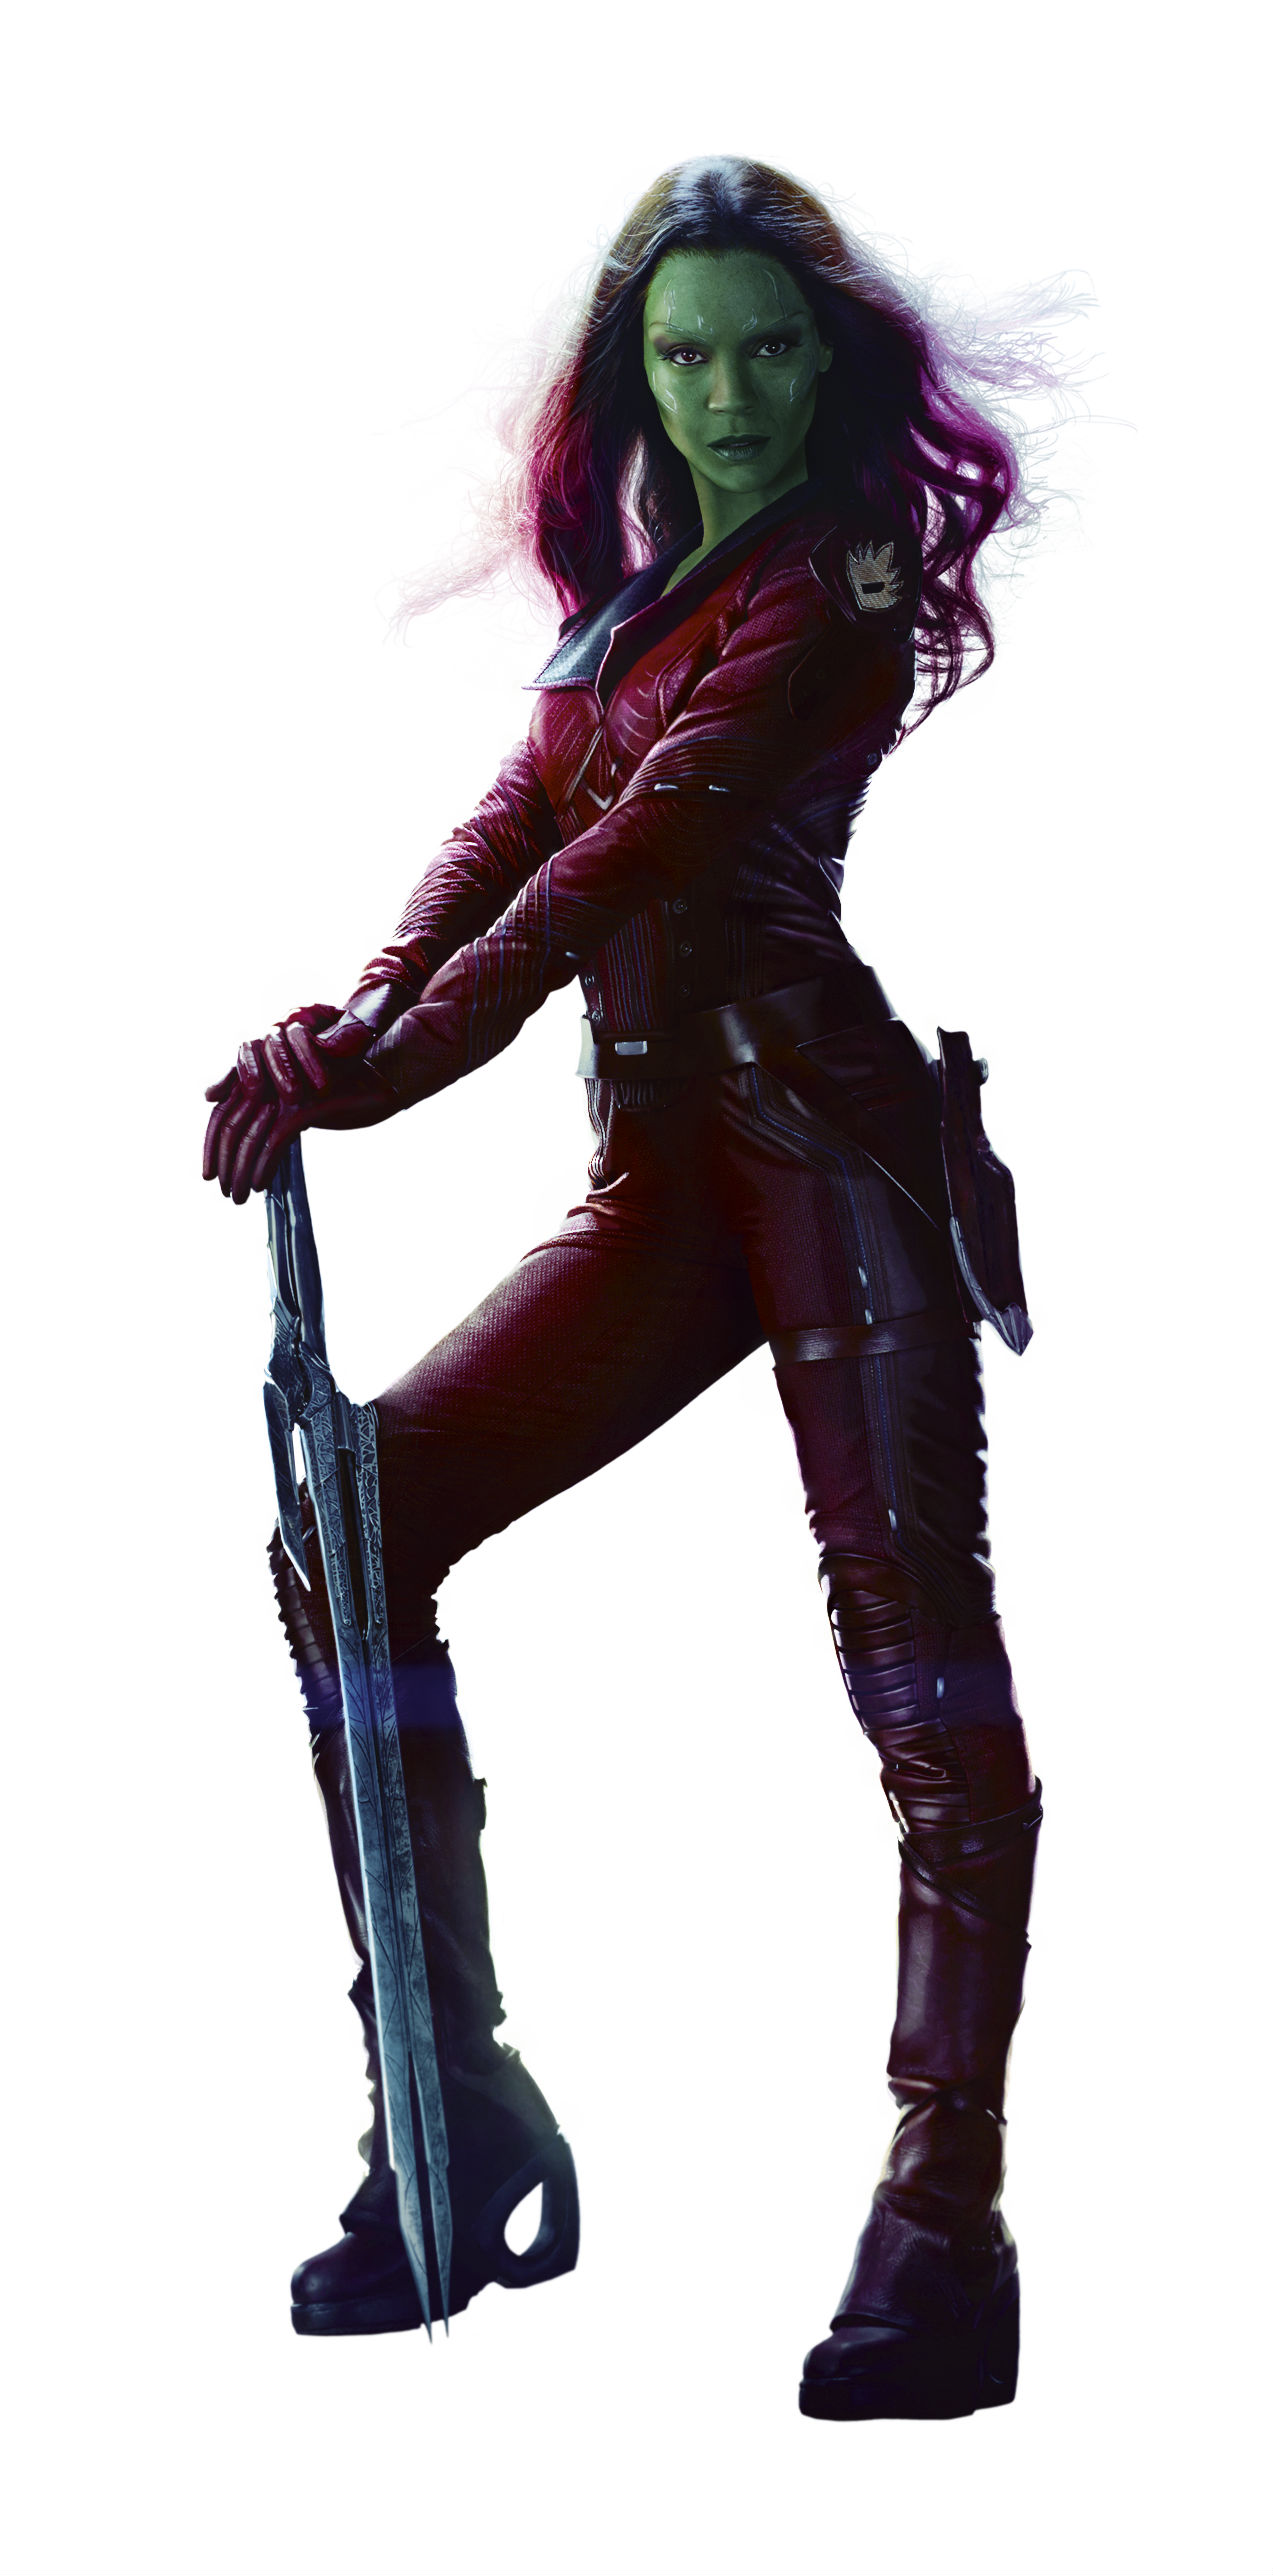 Guardians of the Galaxy Full Body foto's